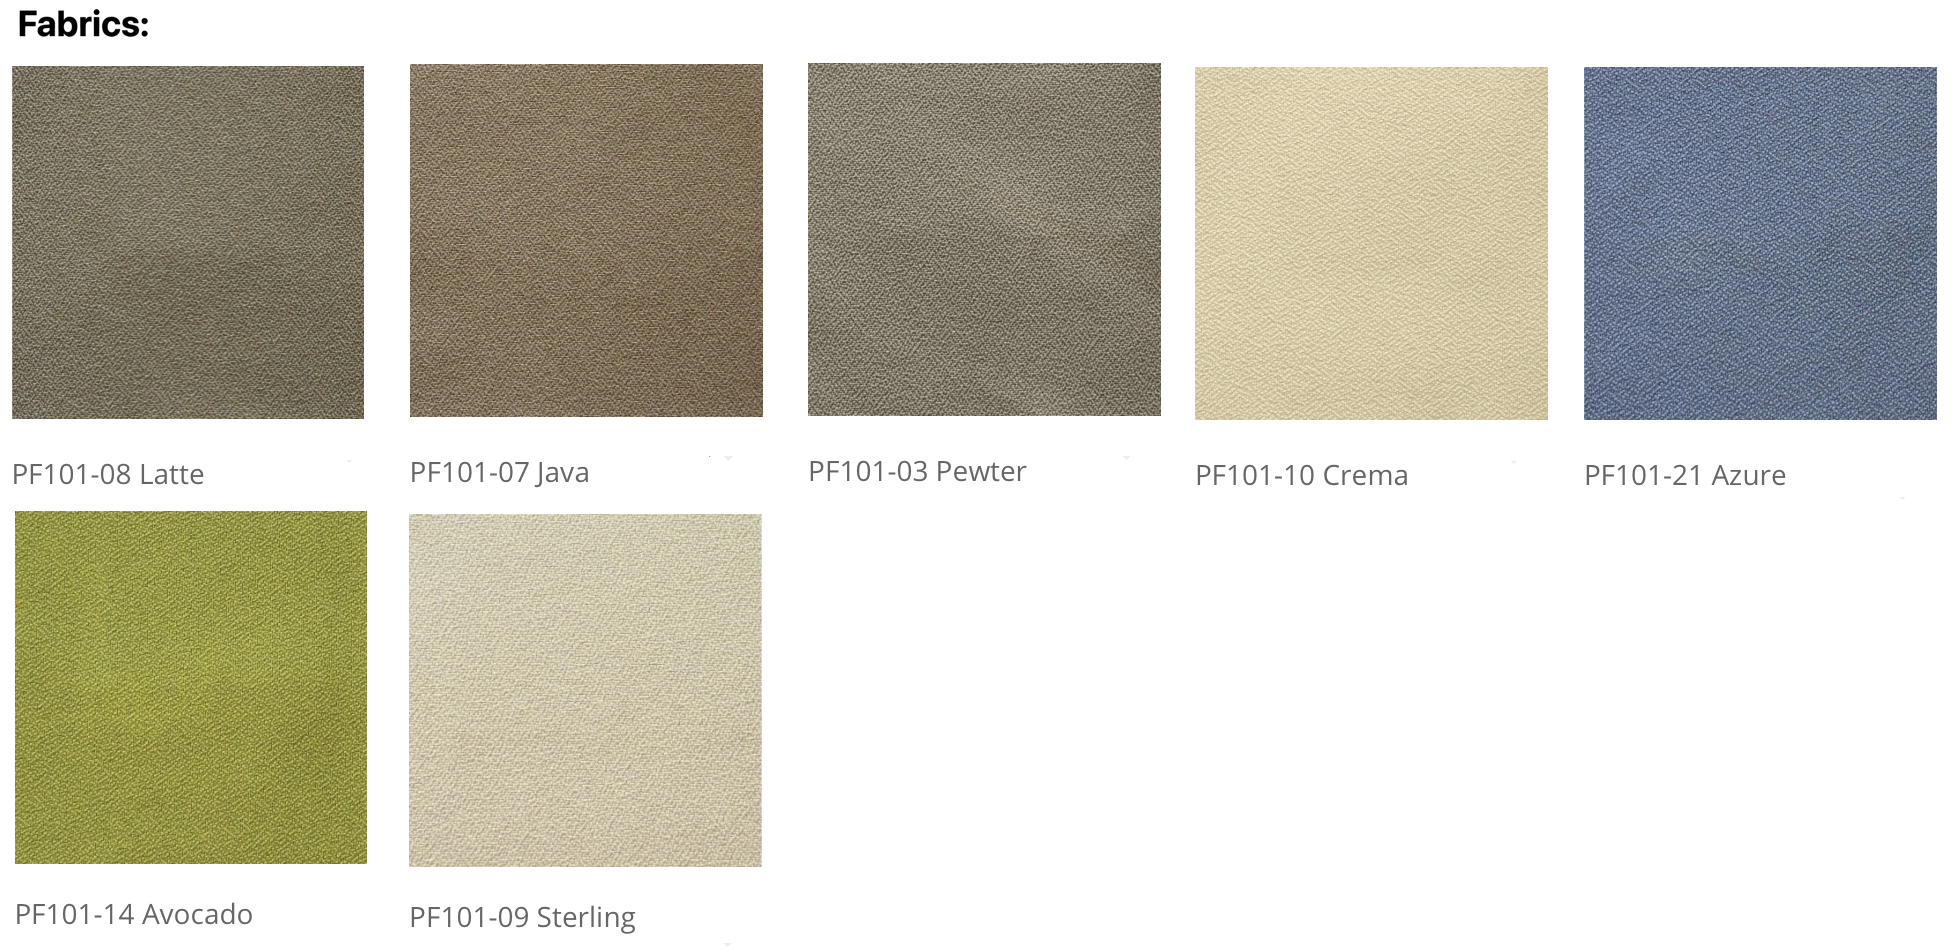 friant fabric swatches